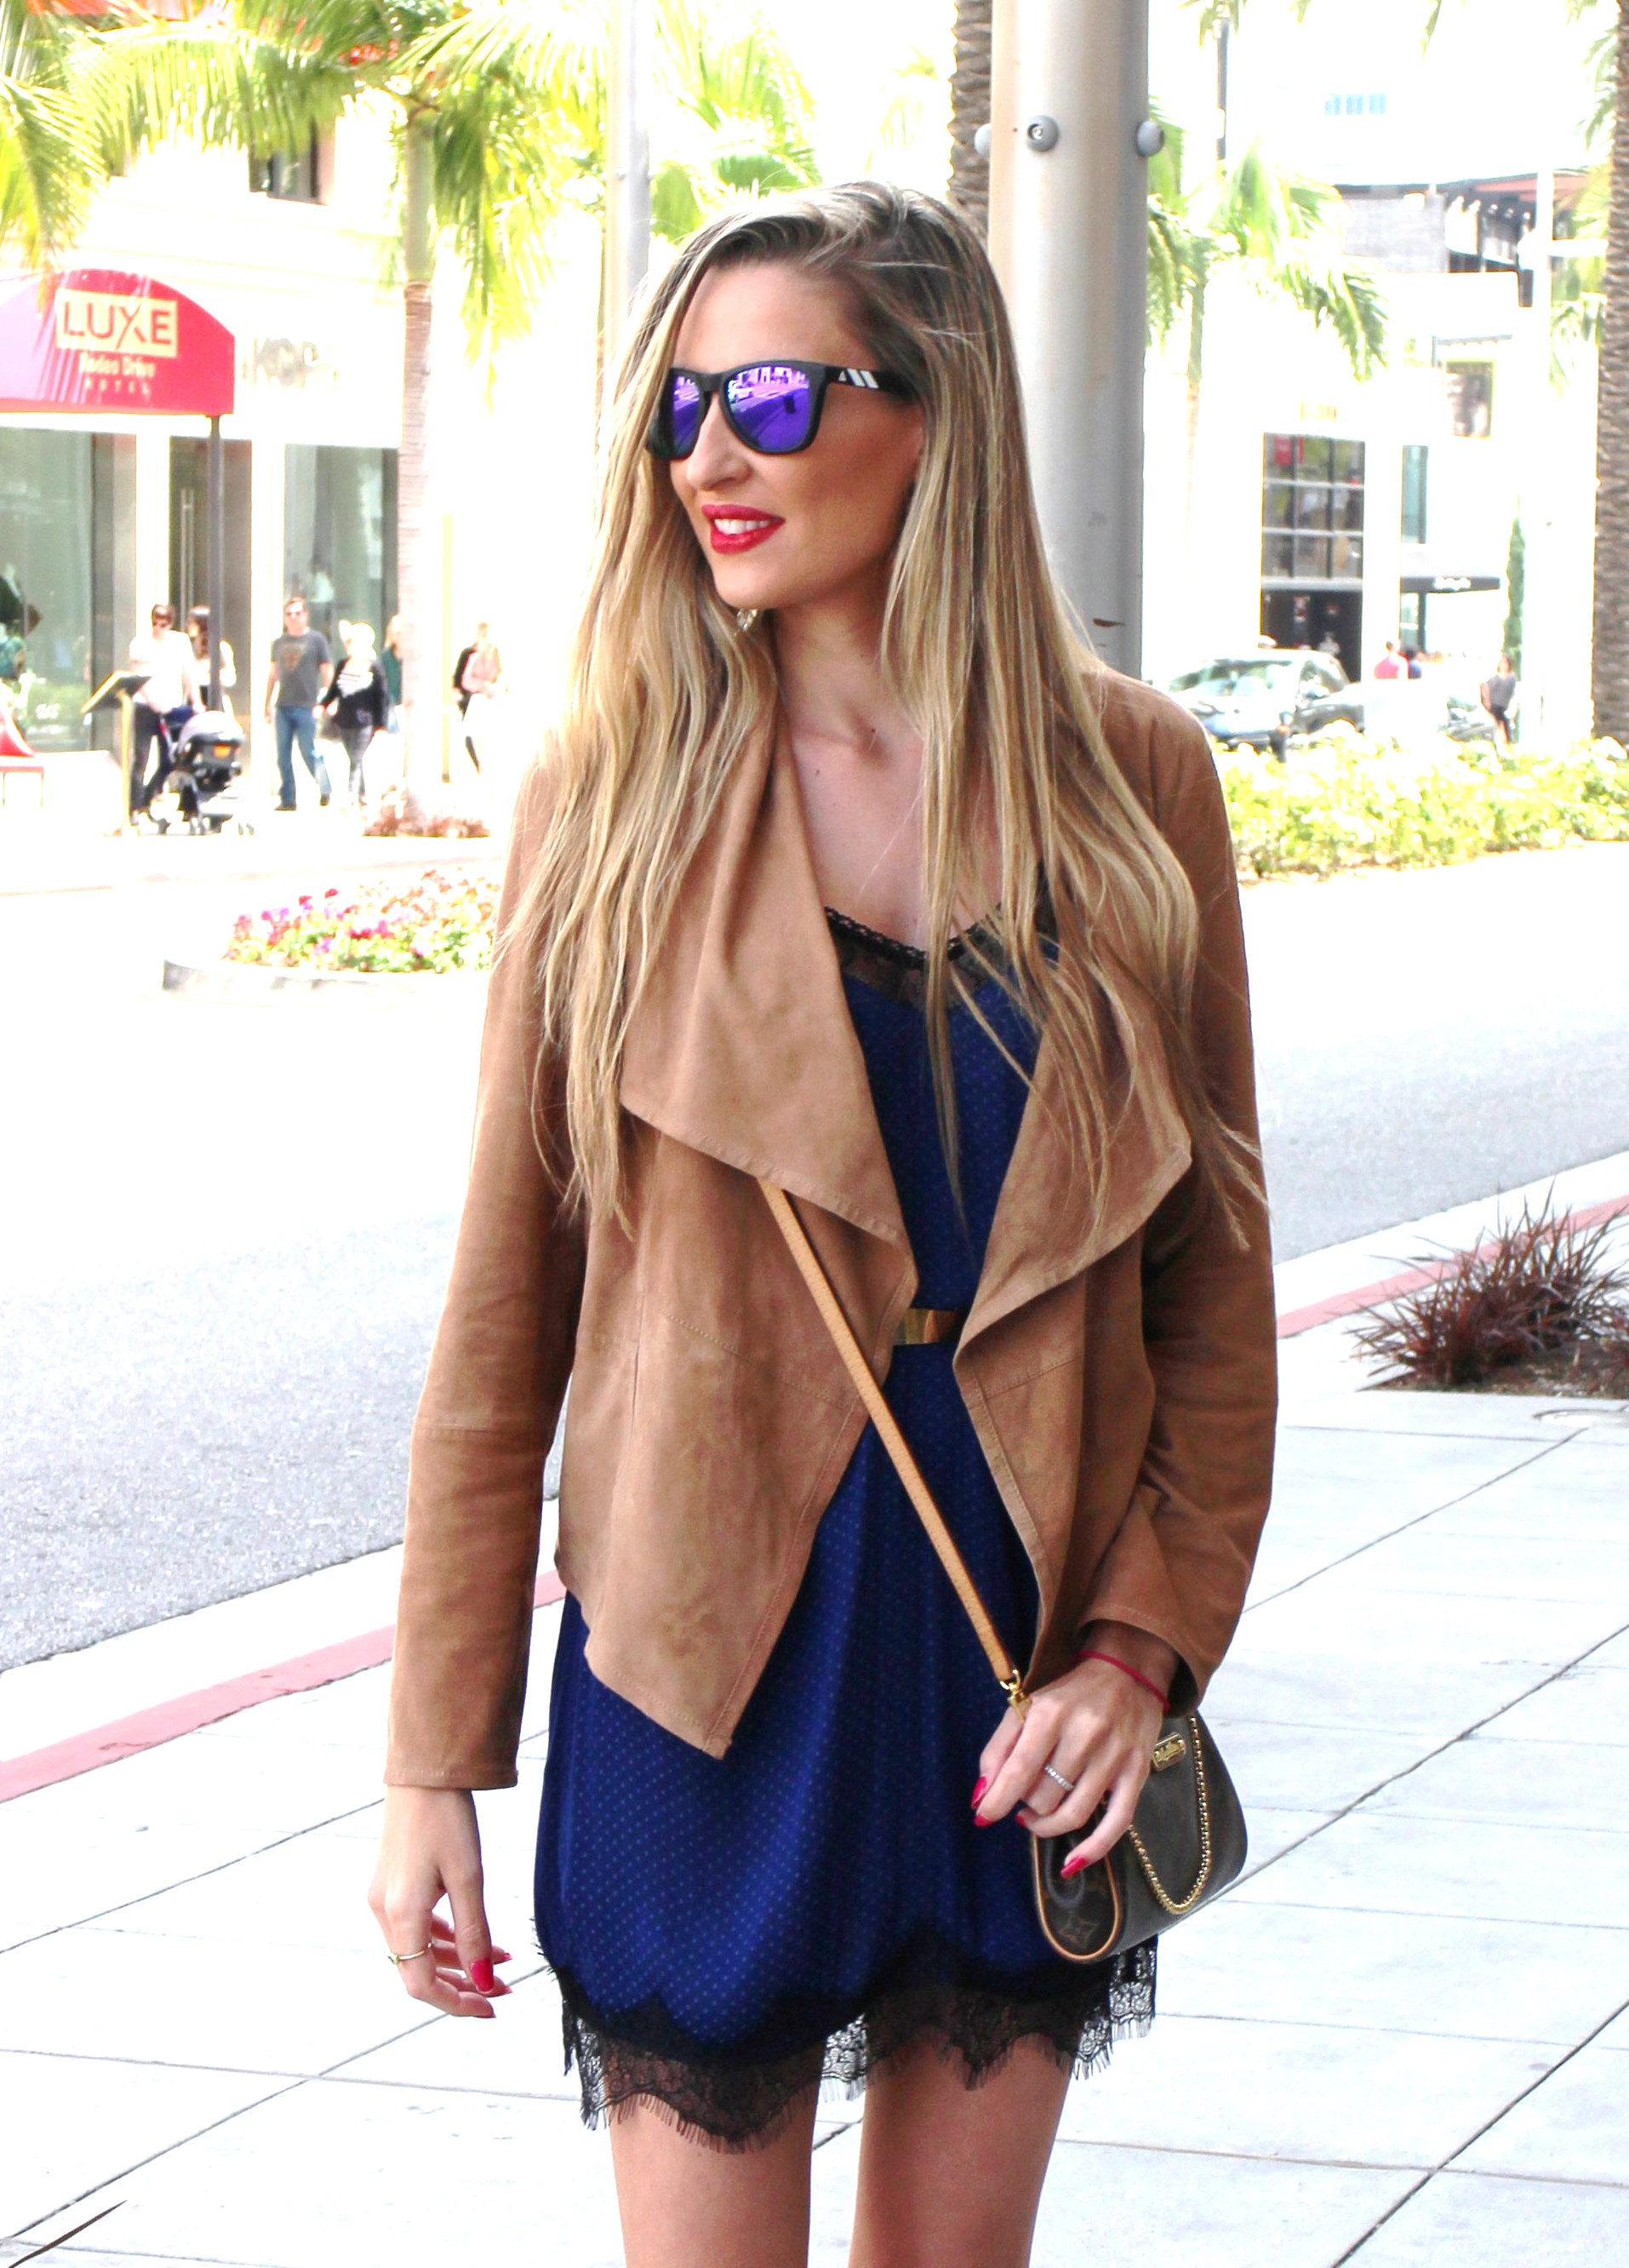 Rodeo_Drive_Los_Angeles_California_Shopping_Lara_Martin_Gilarranz_Bymyheels (3)